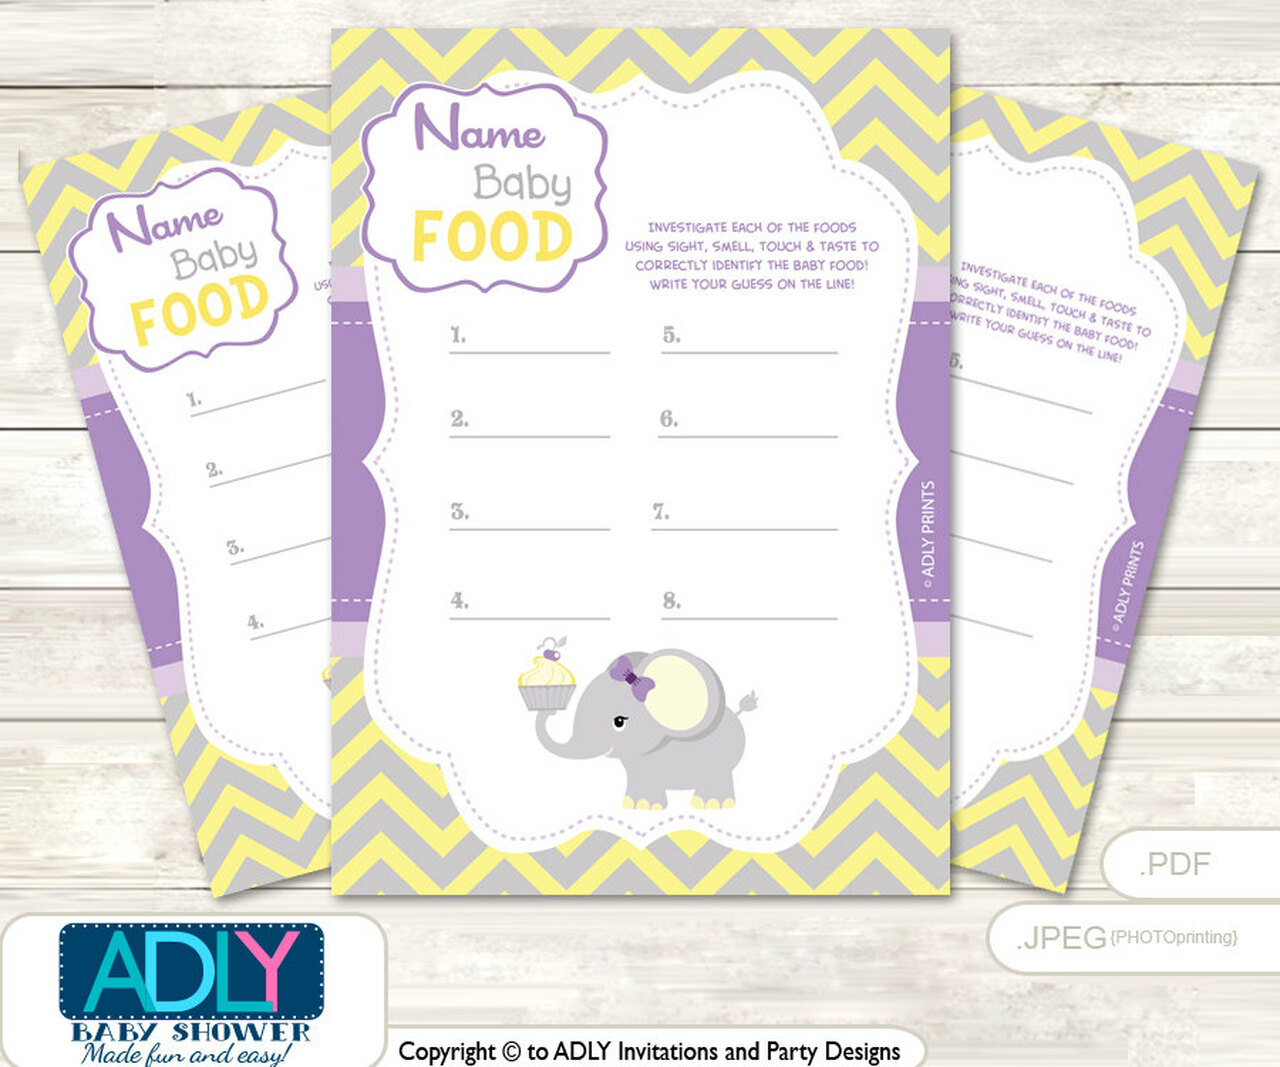 photograph about Baby Food Game Printable referred to as Crimson Elephant Status That Food stuff, Youngster Food stuff bet Activity Printable Card for Boy or girl Elephant Shower Do it yourself Gray Yellow